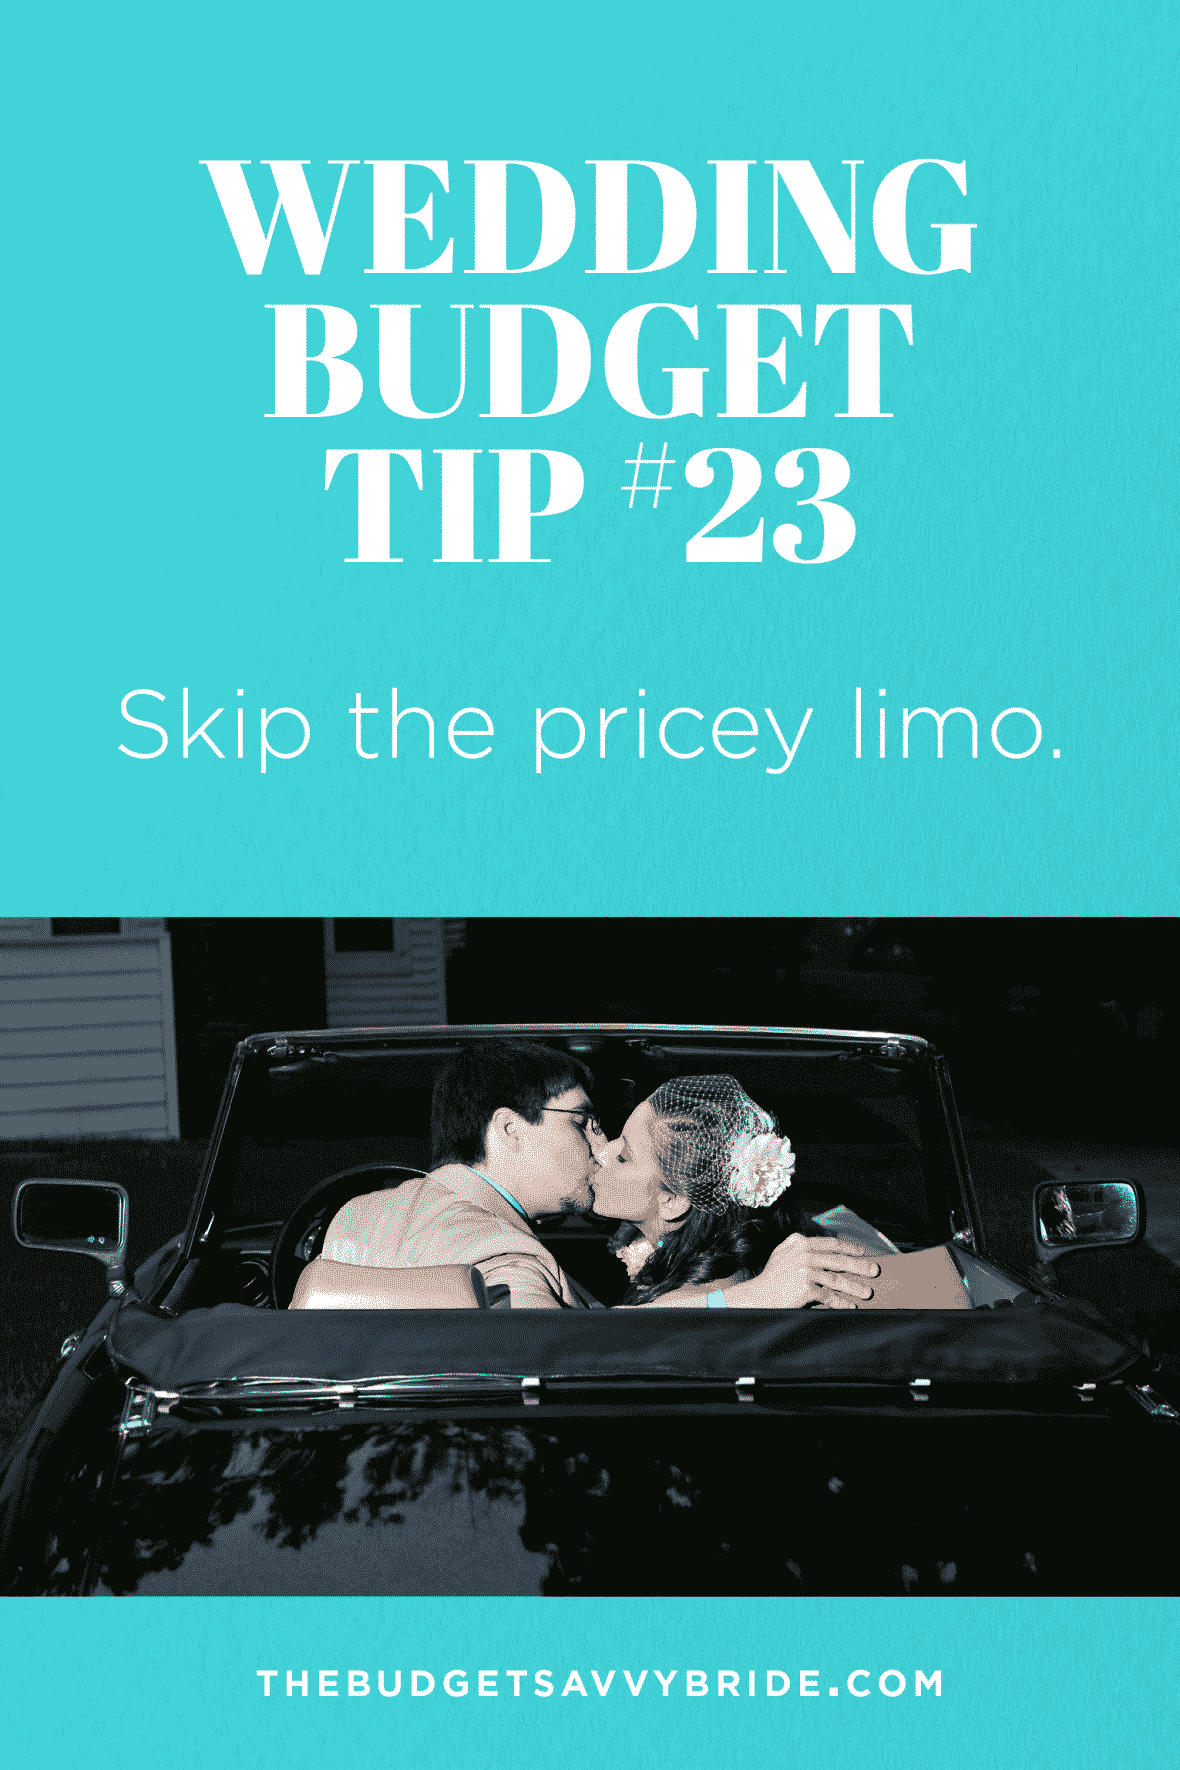 Our advice: Skip the Limo. There's just no reason to spend a thousand bucks (or more!) on transportation. Spend that money on something more important!